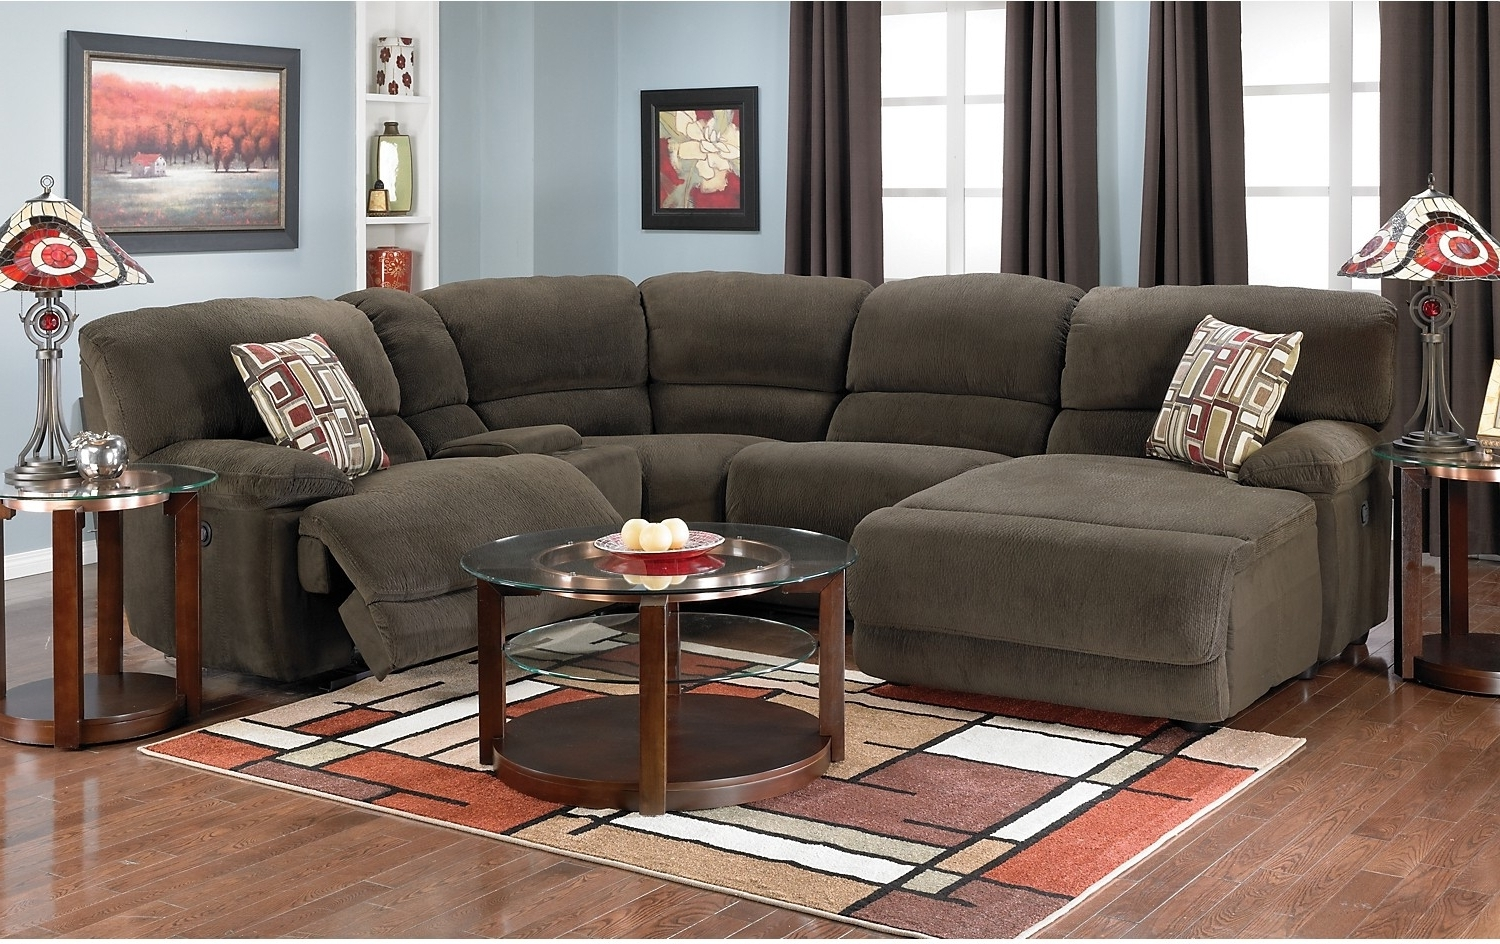 The Brick Sectional Sofas – Cleanupflorida Regarding Trendy The Brick Sectional Sofas (View 9 of 20)